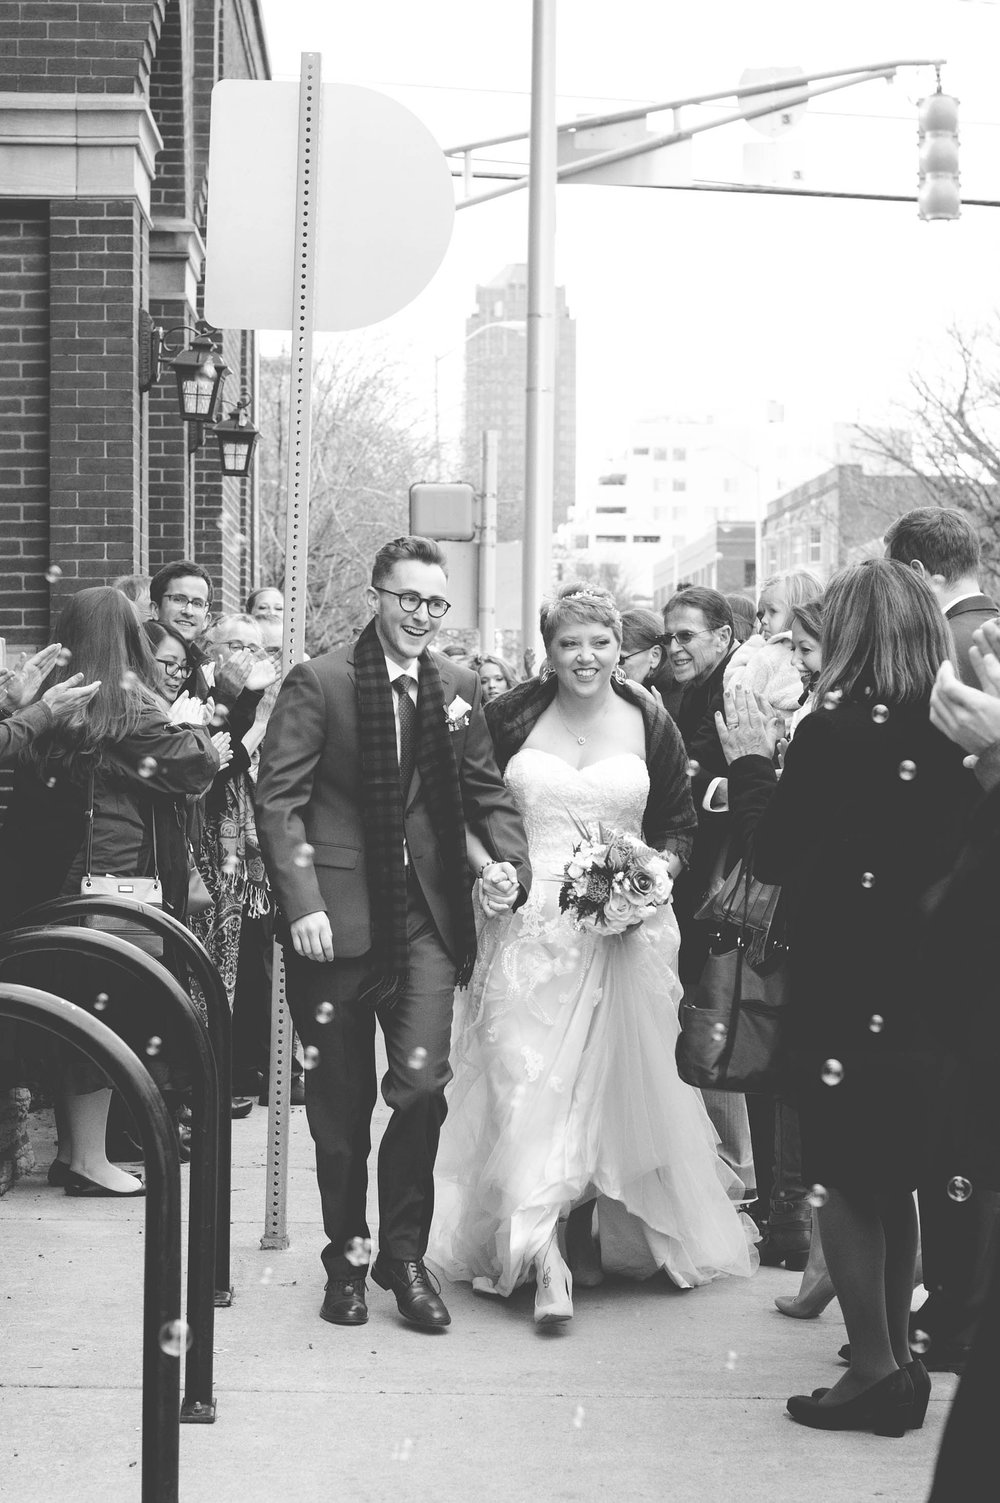 10 Wedding Tips - To Know Before Walking Down The Aisle